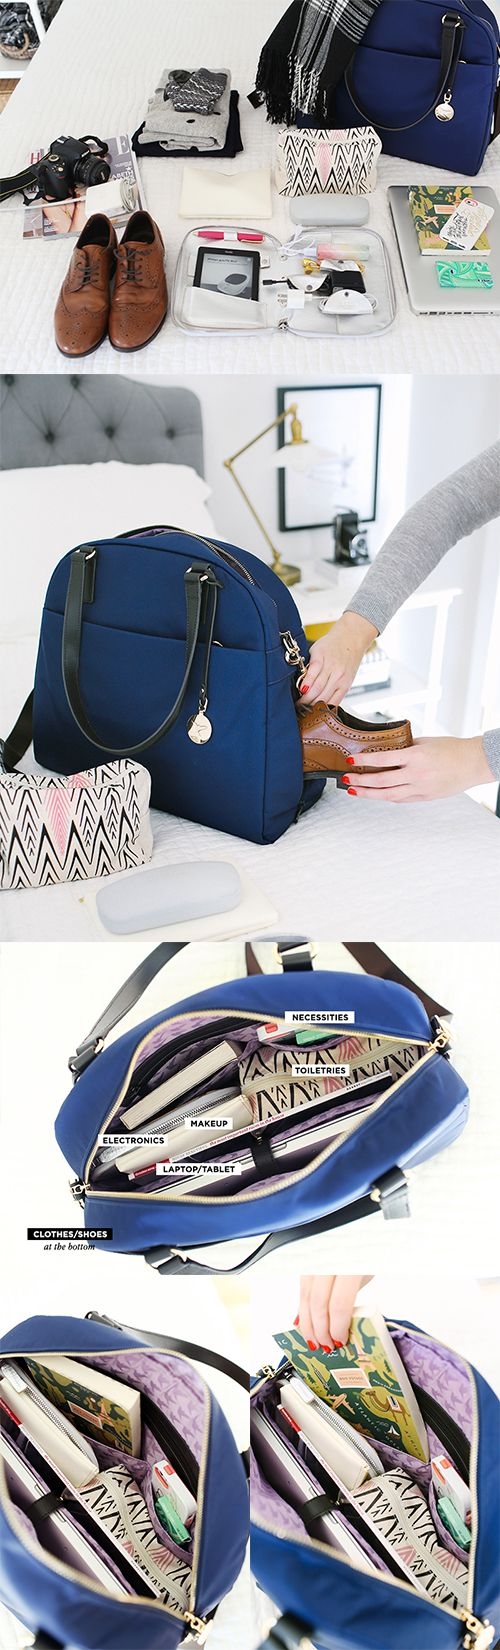 """""""The OG"""" - lightweight travel bag, tech friendly laptop tote, and stylish gym bag. Designed by Lo & Sons - loandsons.com. Photo by The Every Girl - theeverygirl.com"""